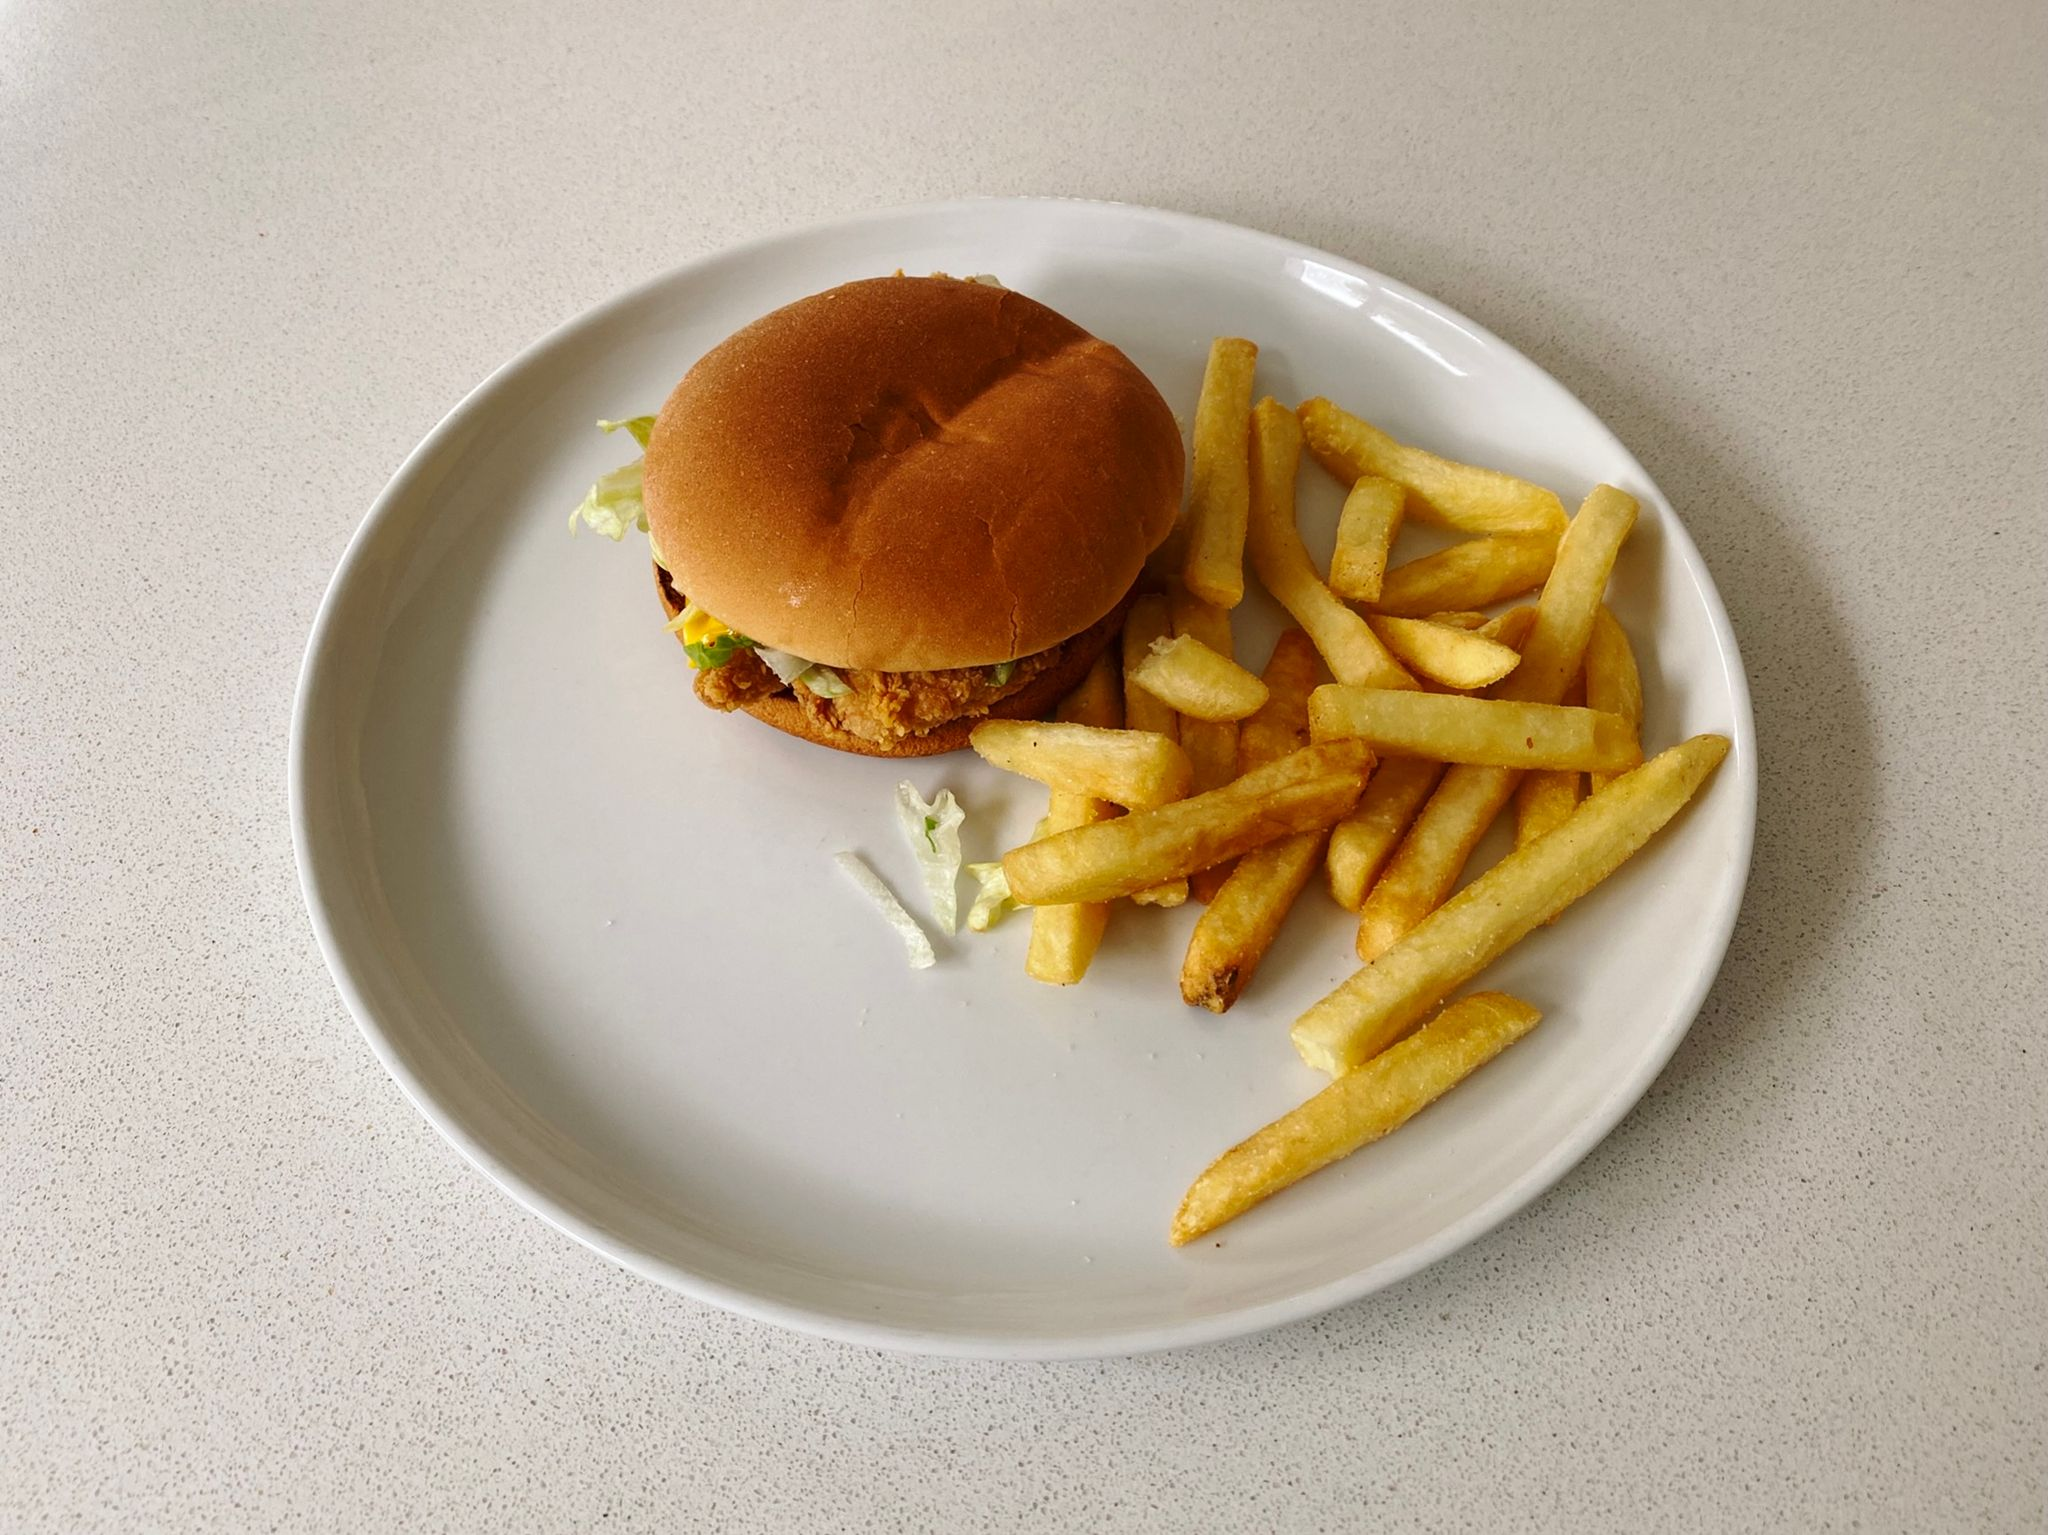 A photo of a chicken burger and chips on a plate.